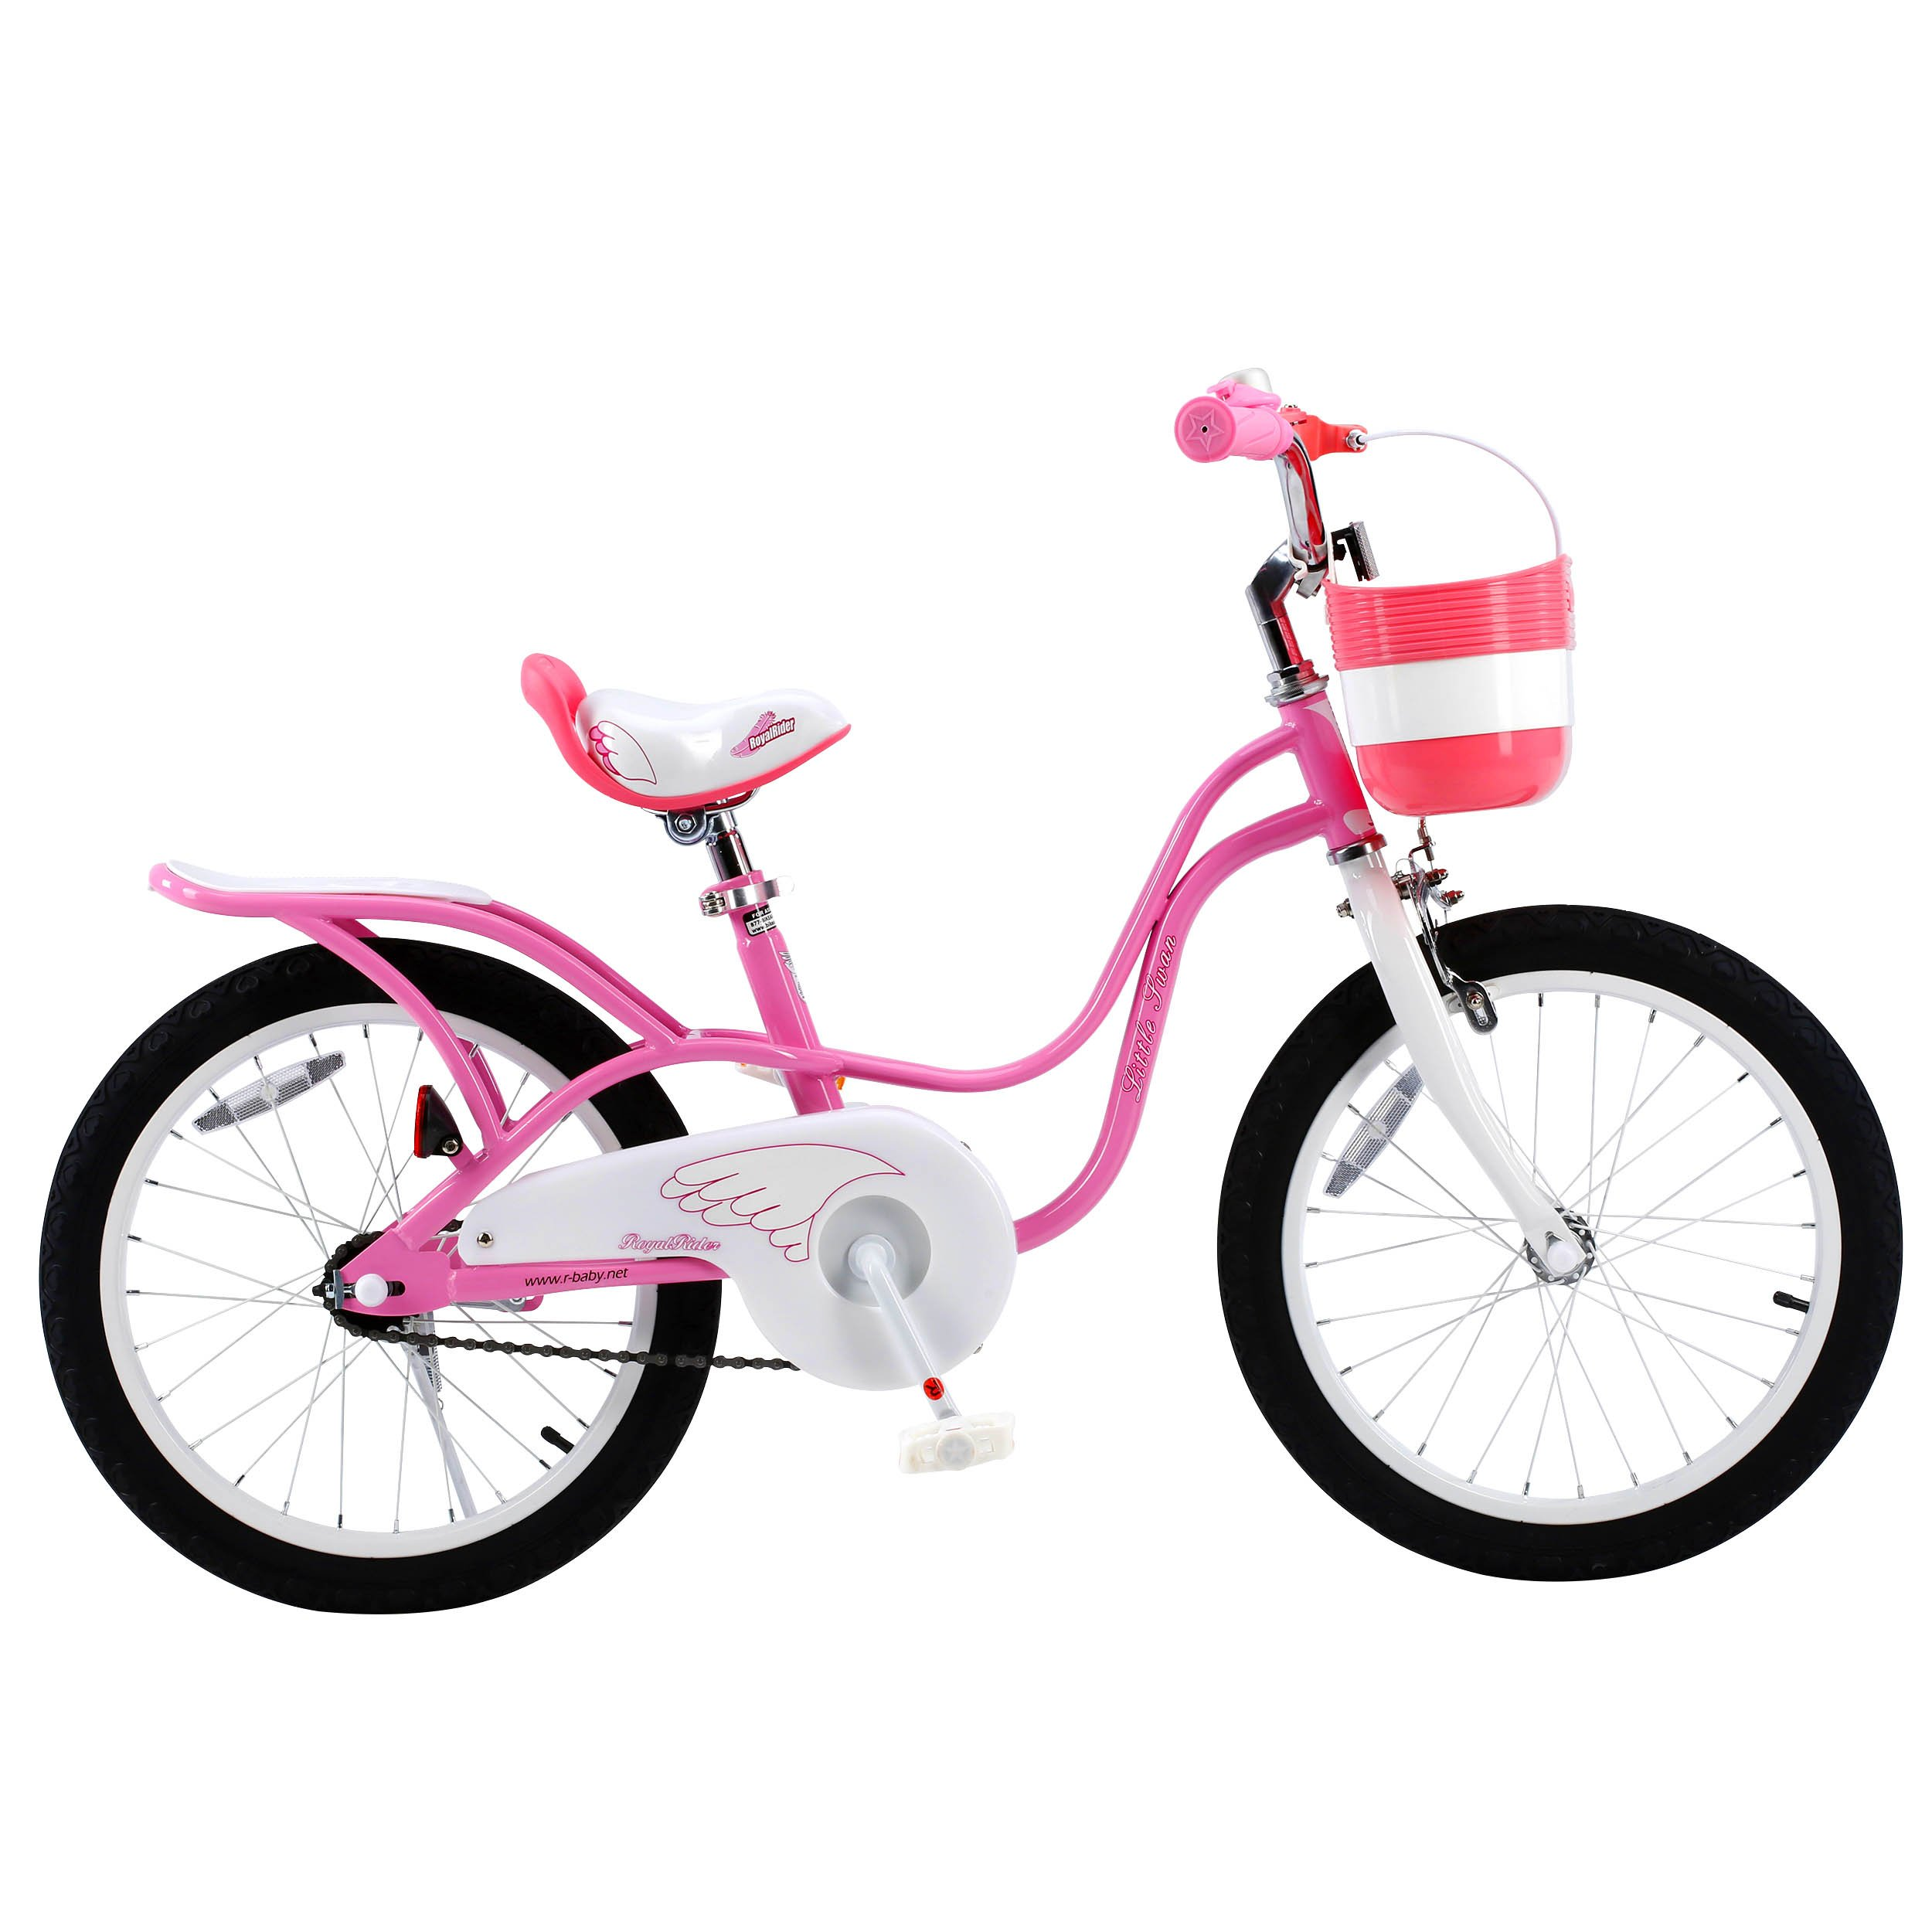 RoyalBaby Little Swan Girl's Bike with basket, 14, 16 or 18 inch girls bike with training wheels or kickstand, gifts for kids, girls' bicycles by Royalbaby